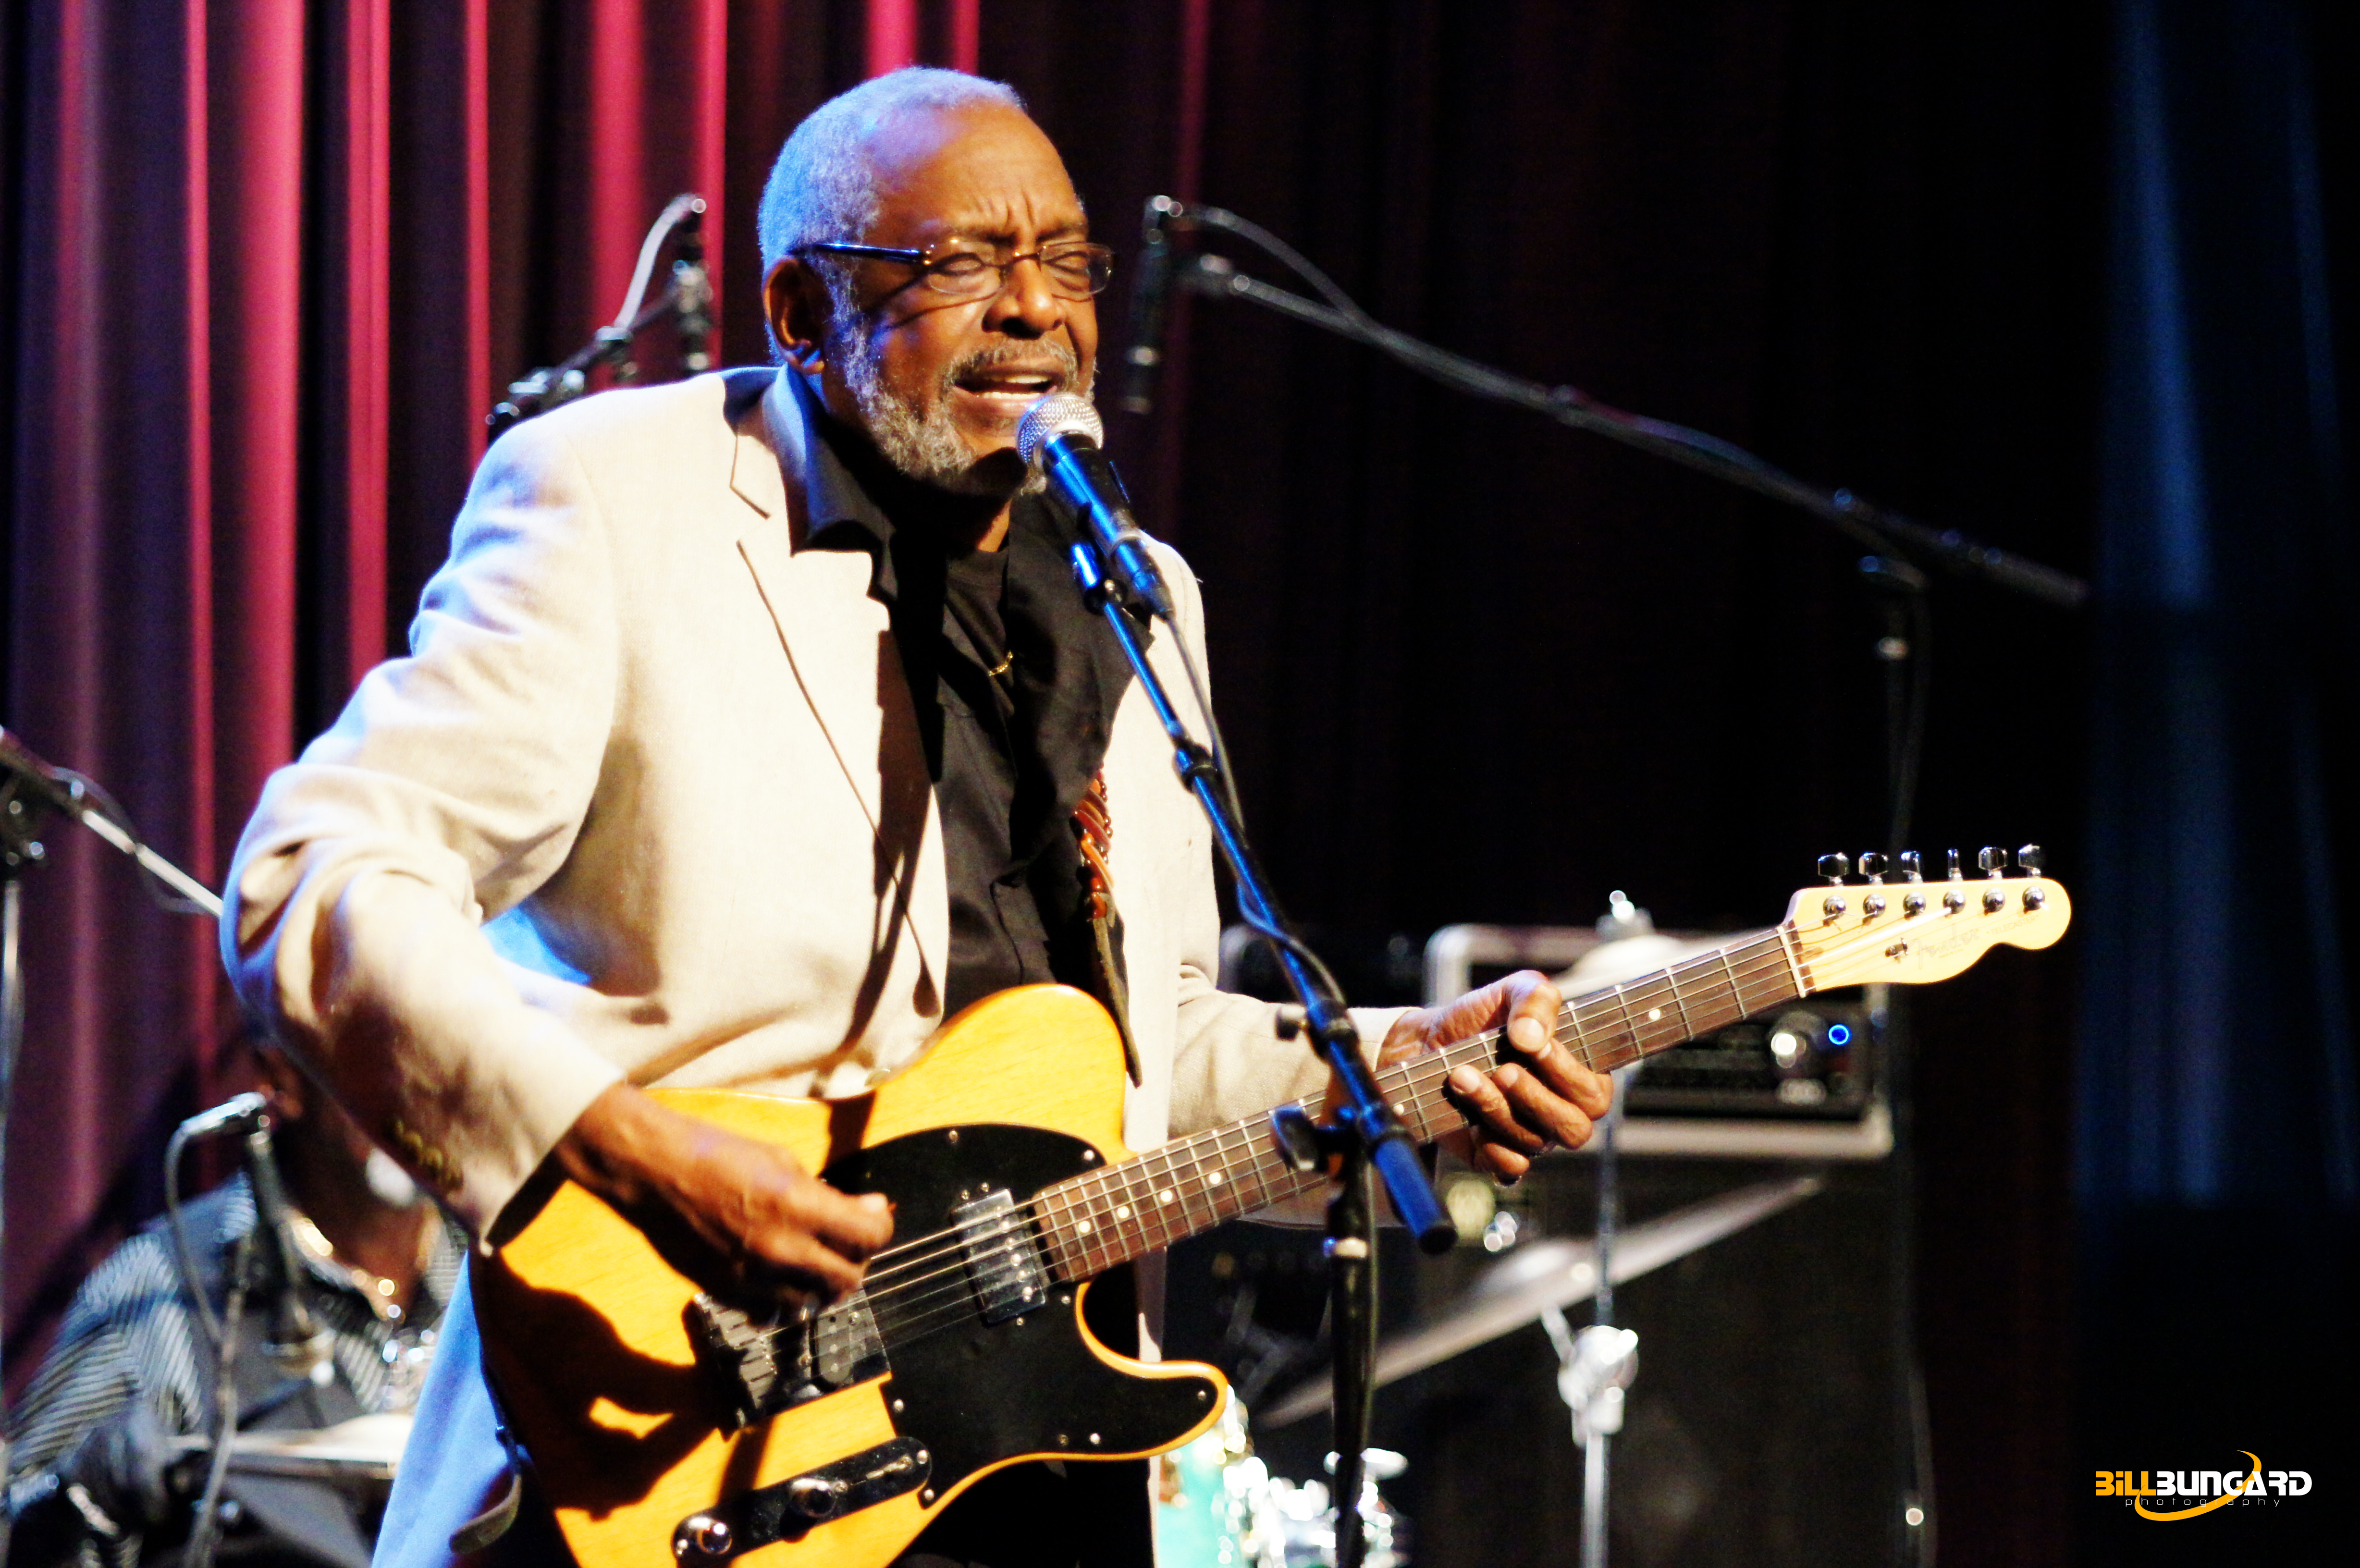 Wendell Holmes at Jazz Alley (Photo by Bill Bungard)